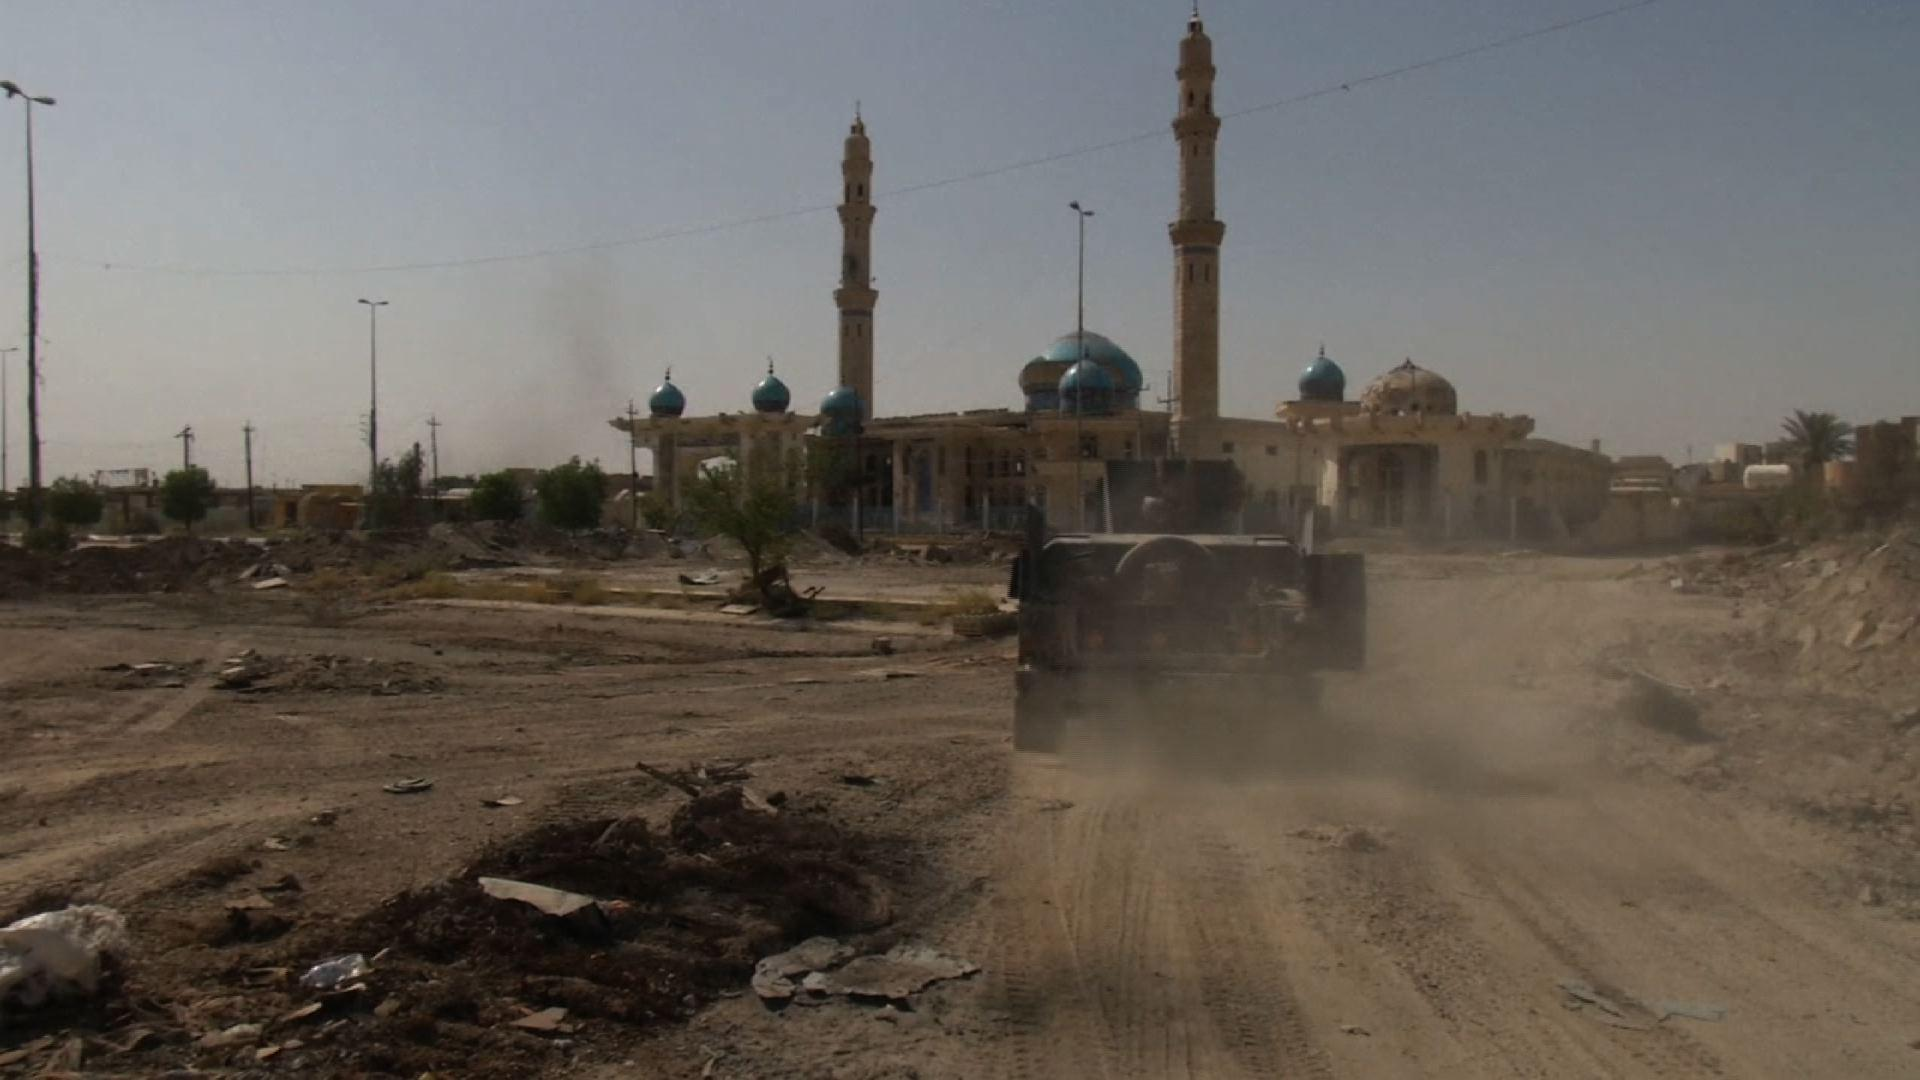 Inside Fallujah, Devastation Follows Battle